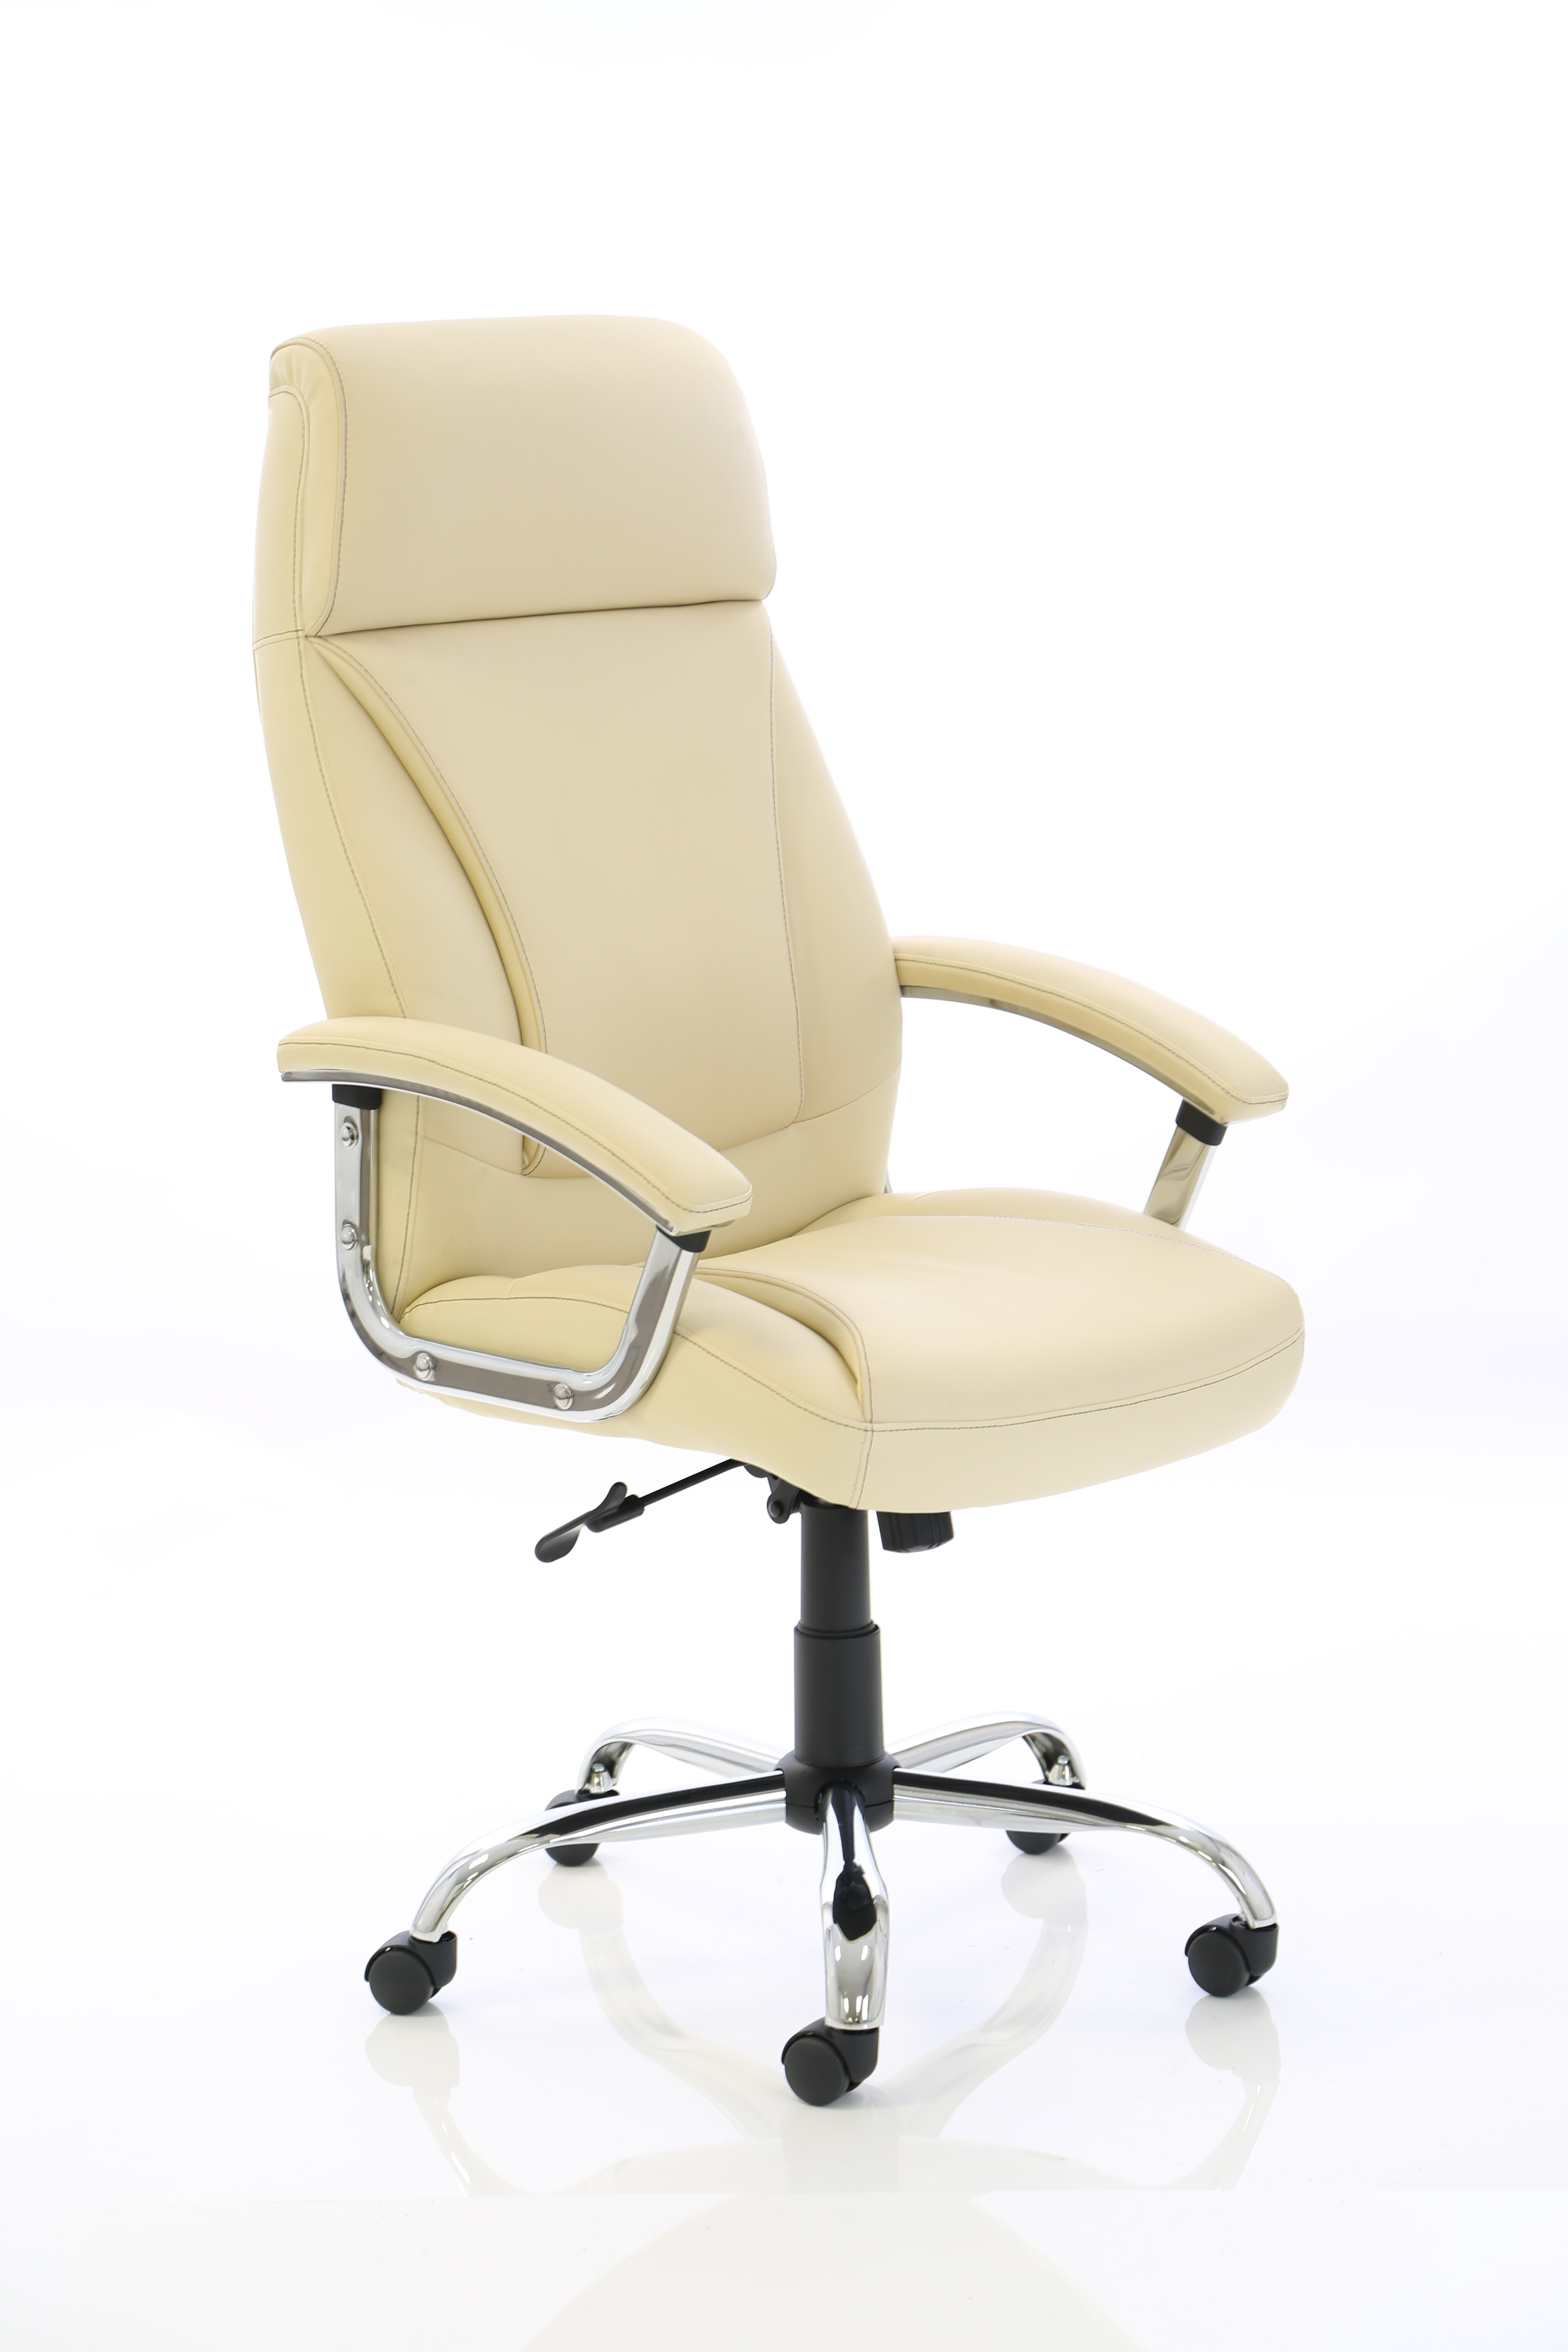 Executive Chairs Penza Executive Cream Leather Chair EX000186